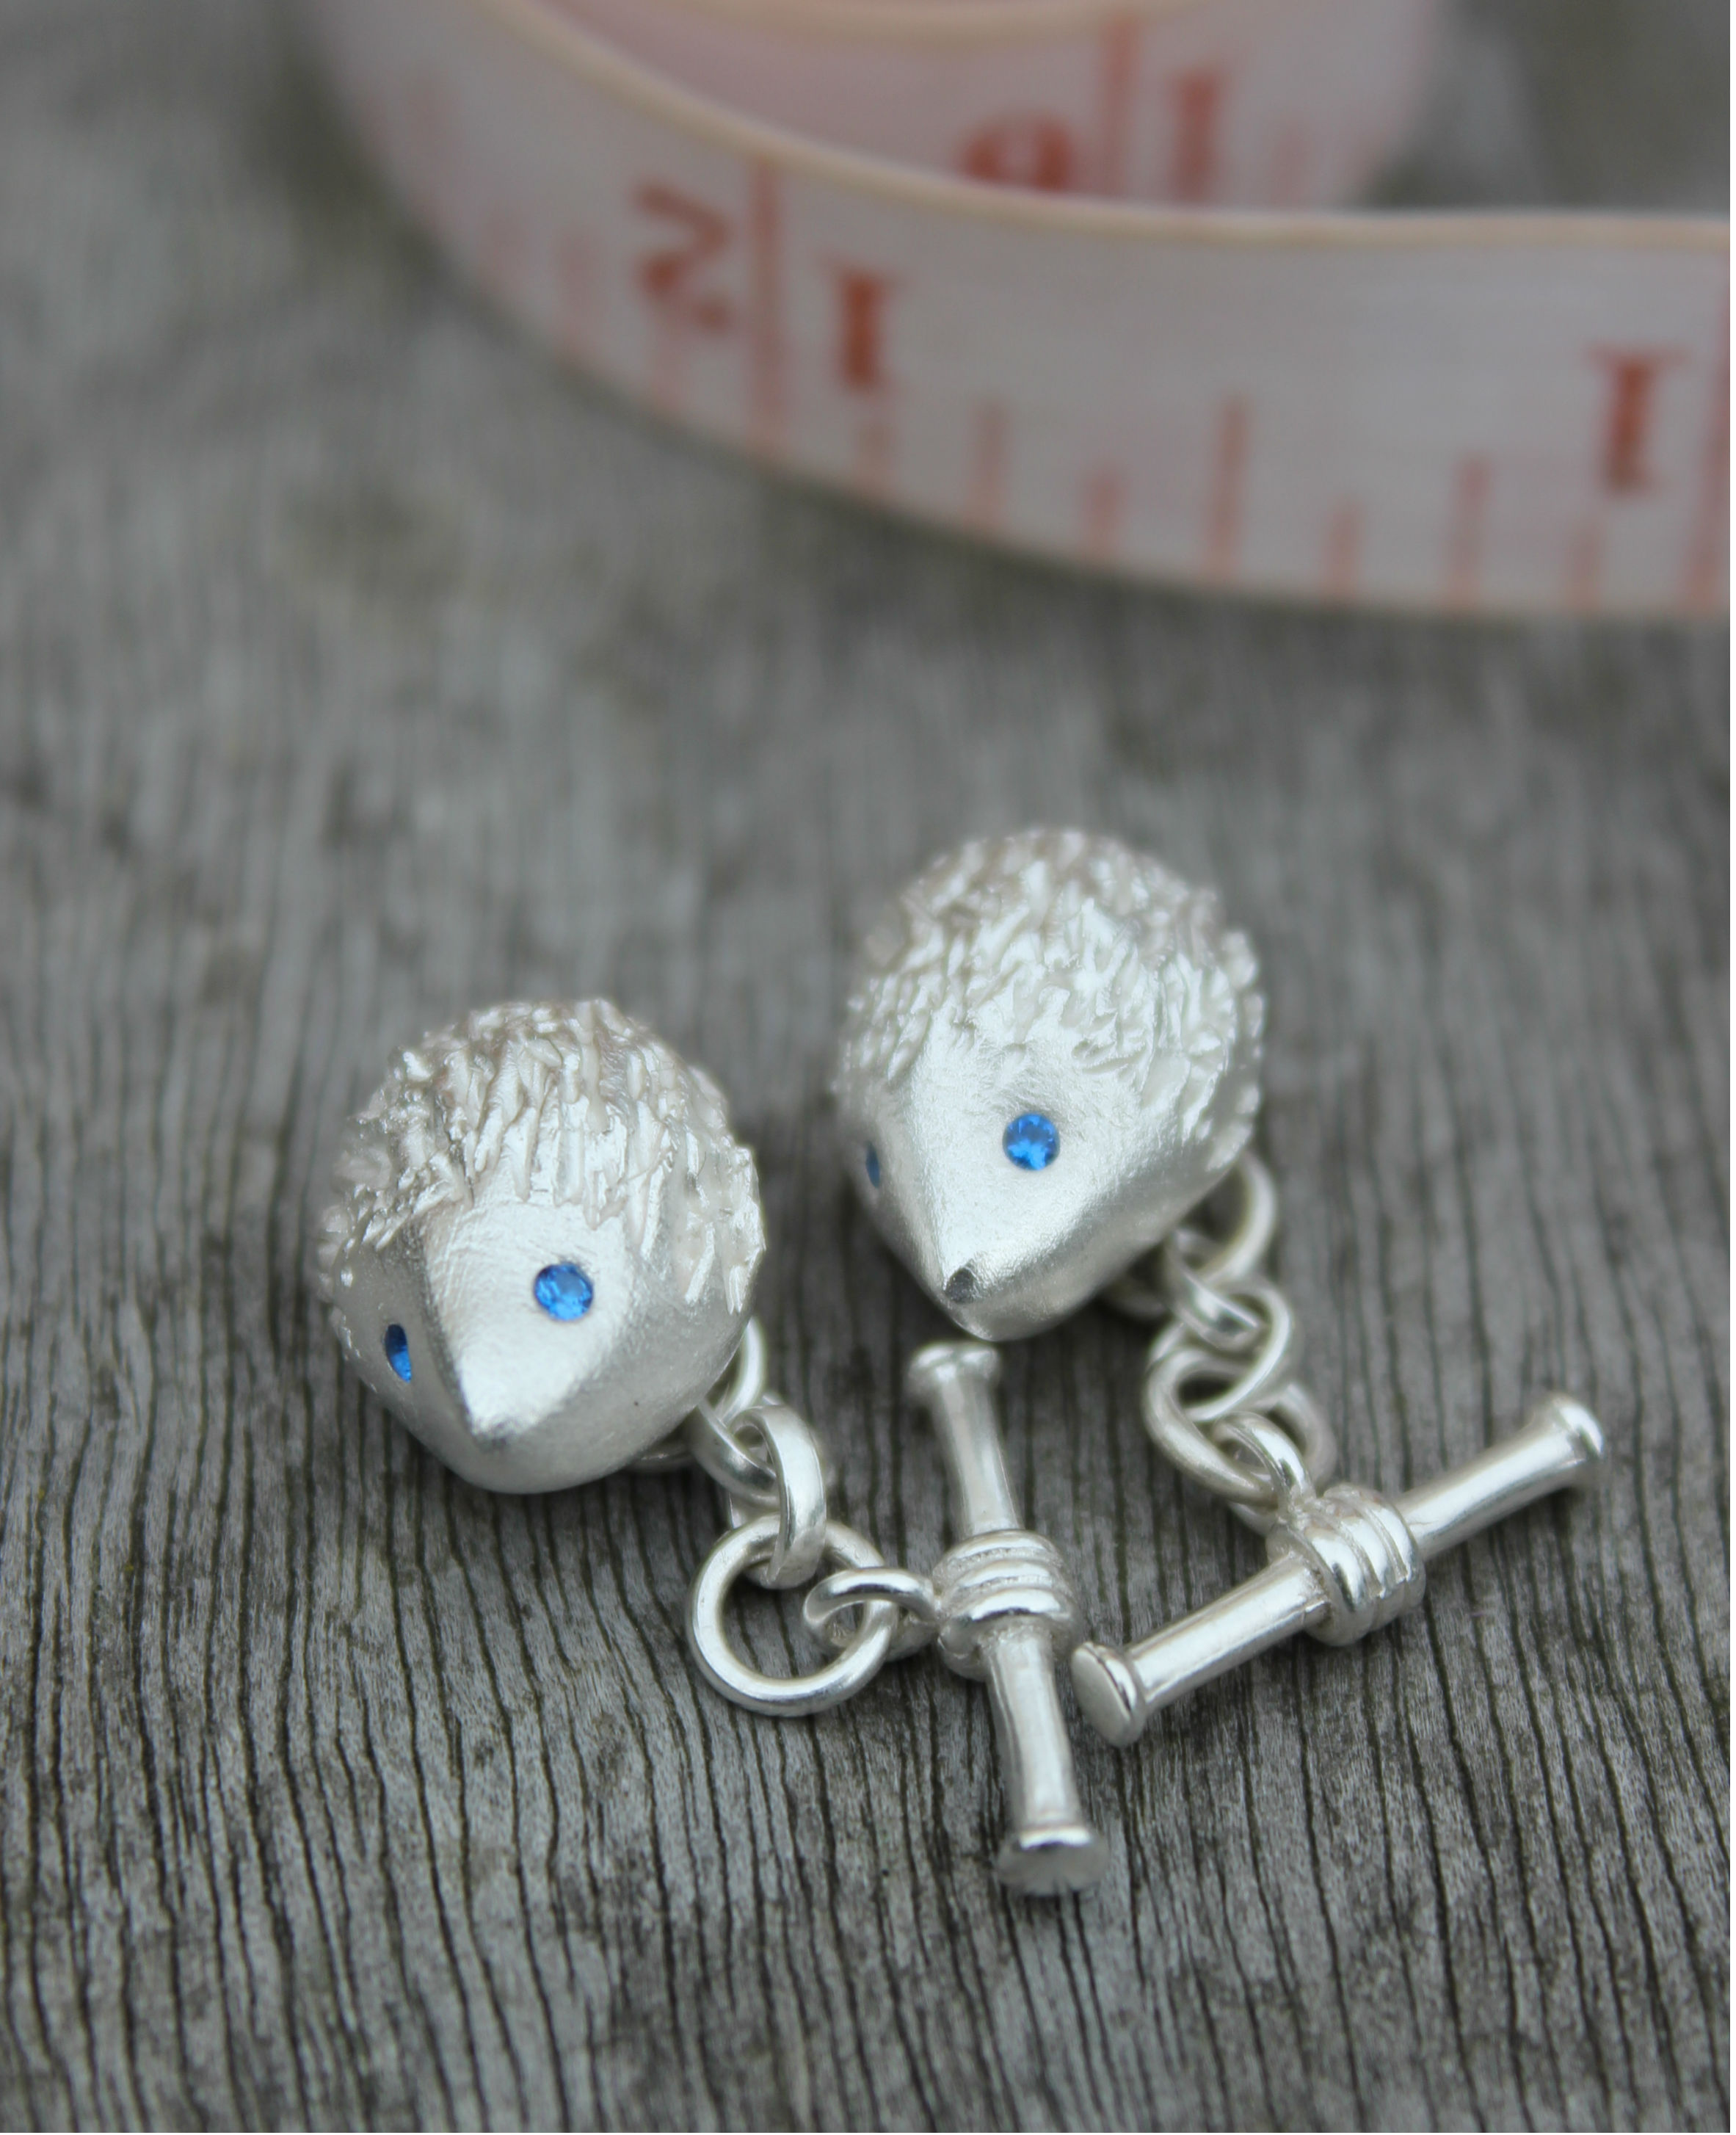 Solid silver hedgehog cufflinks